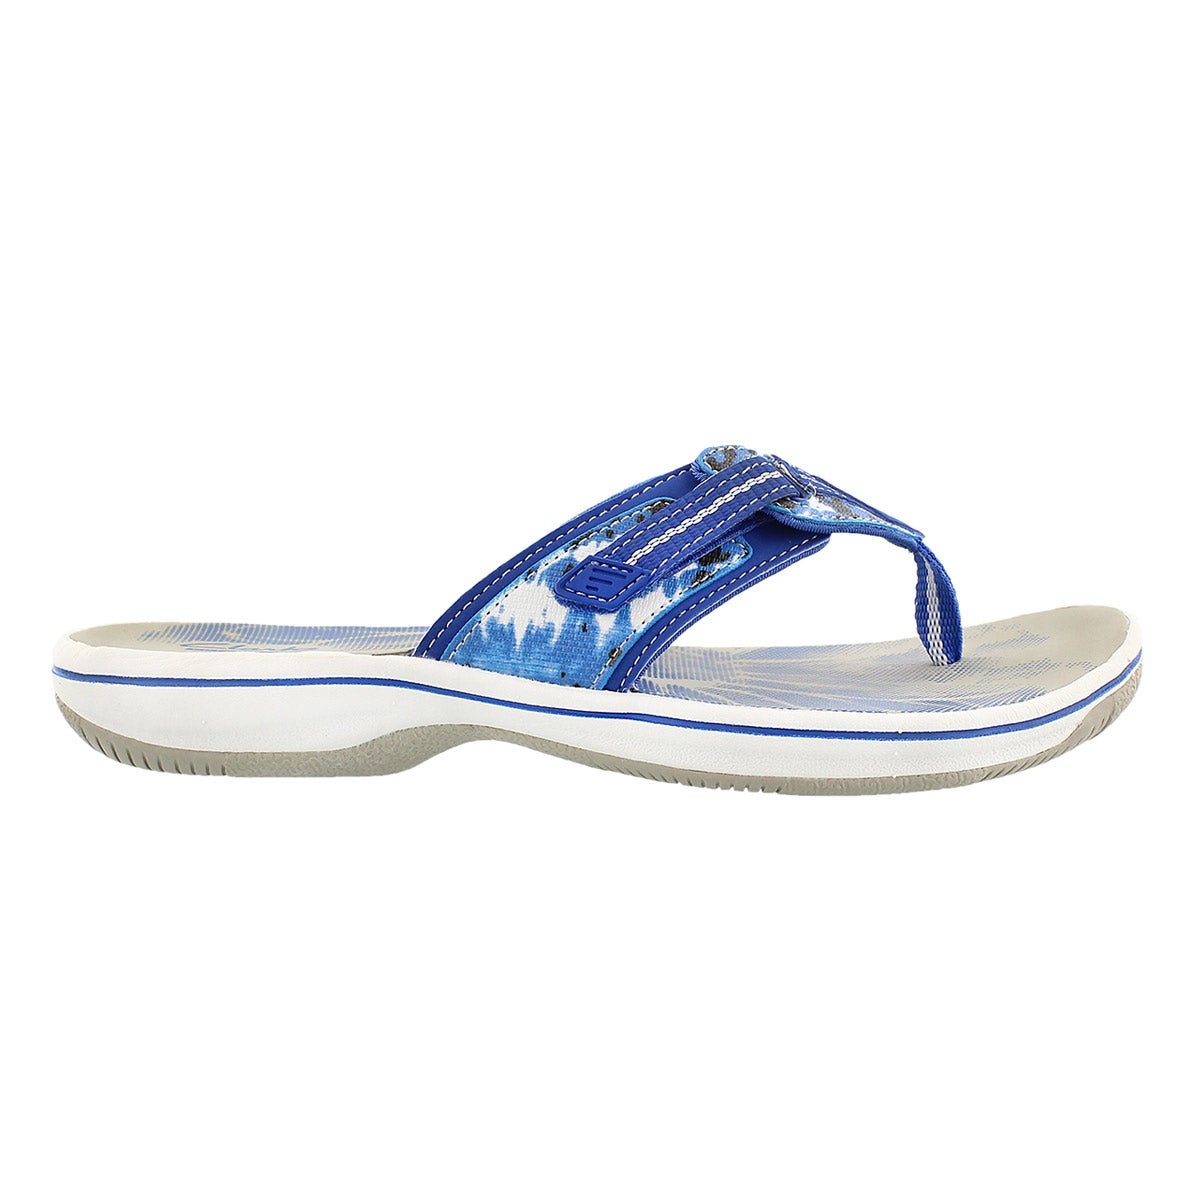 Lds Brinkley Jazz blue camo thong sandal